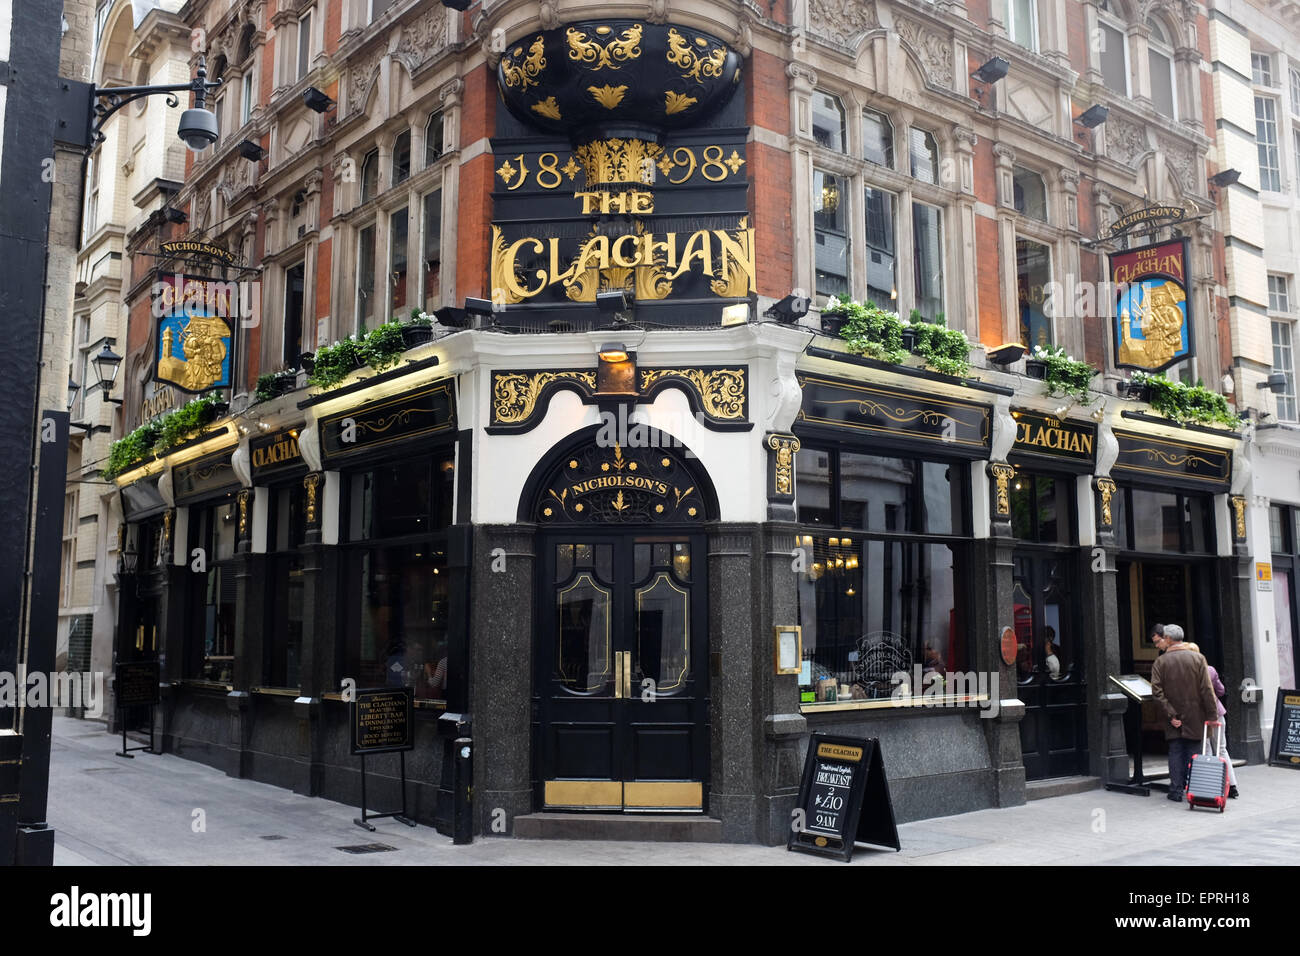 The Clachan pub on Kingly Street in central London, England. - Stock Image